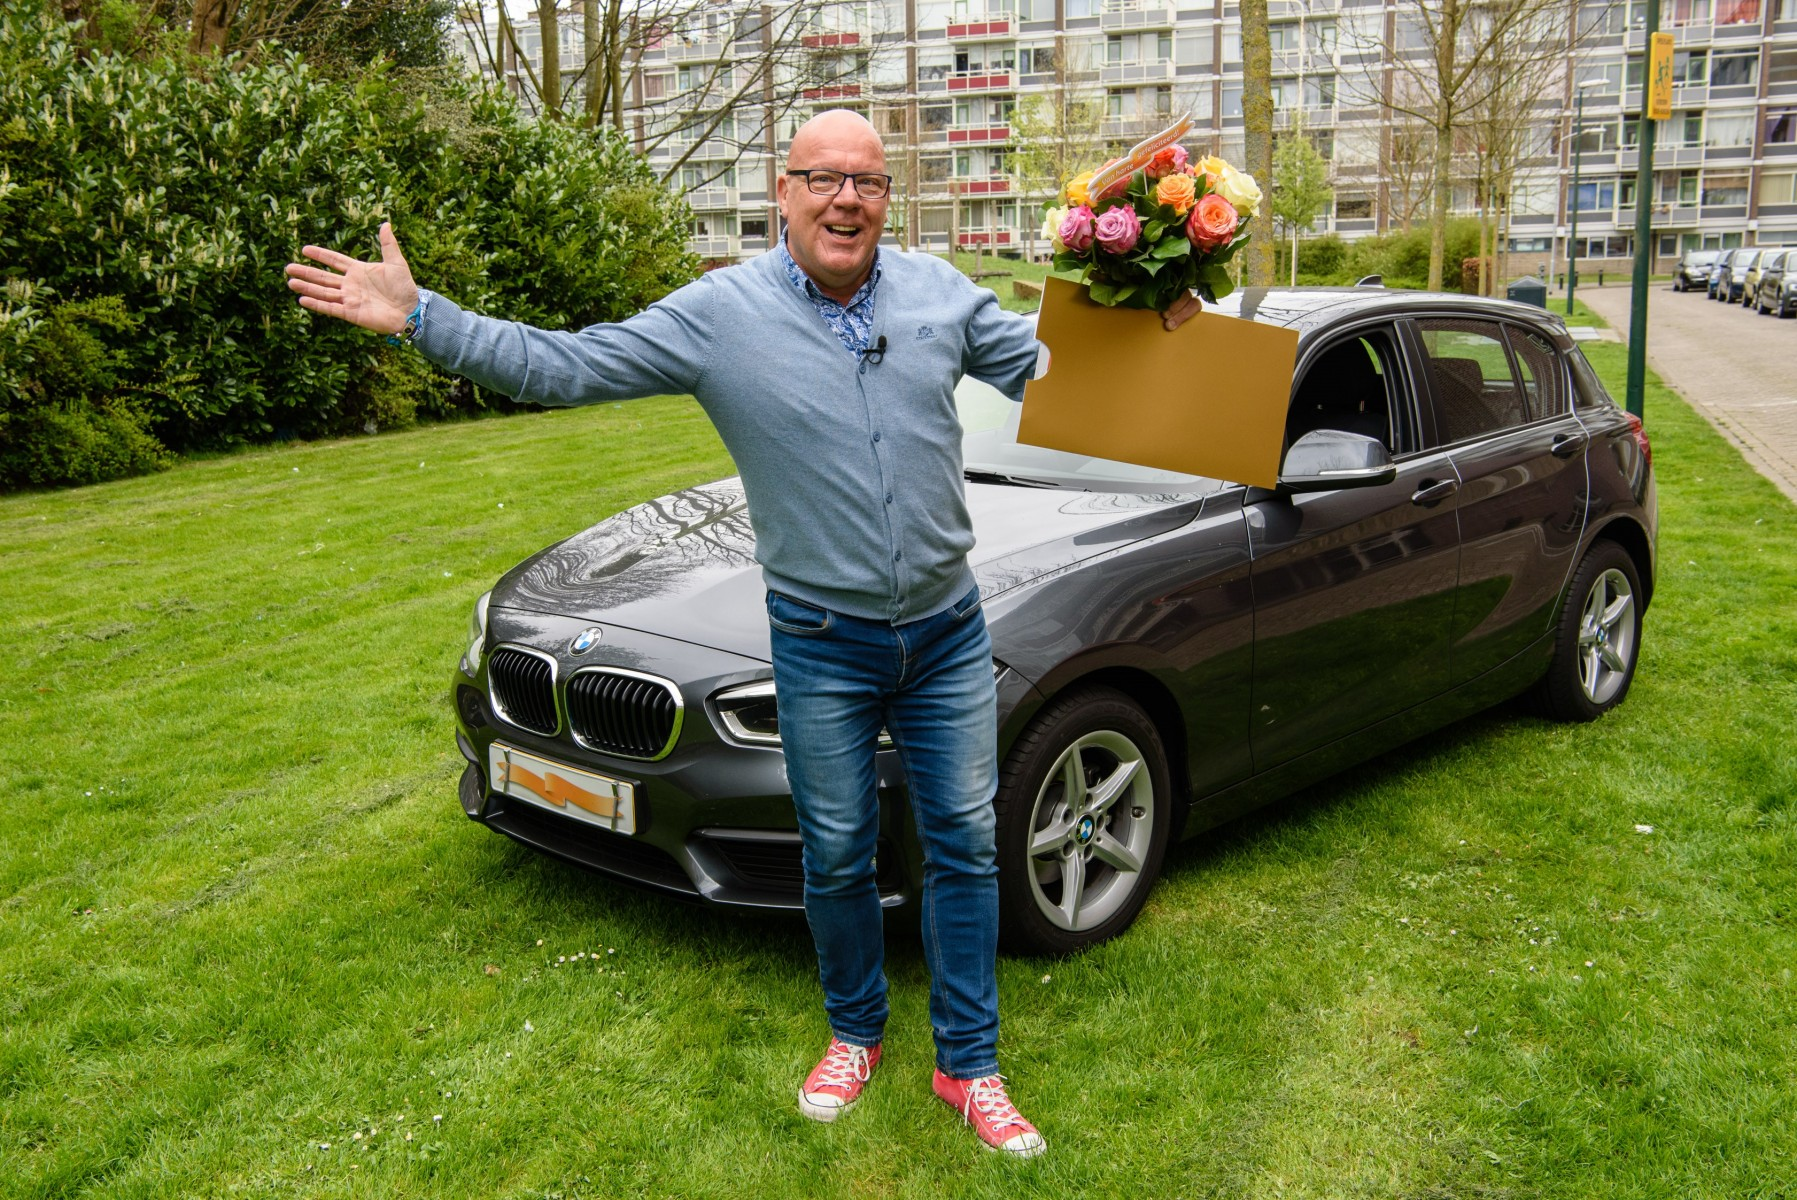 Stockbeeld Gaston  met cheque en BMW